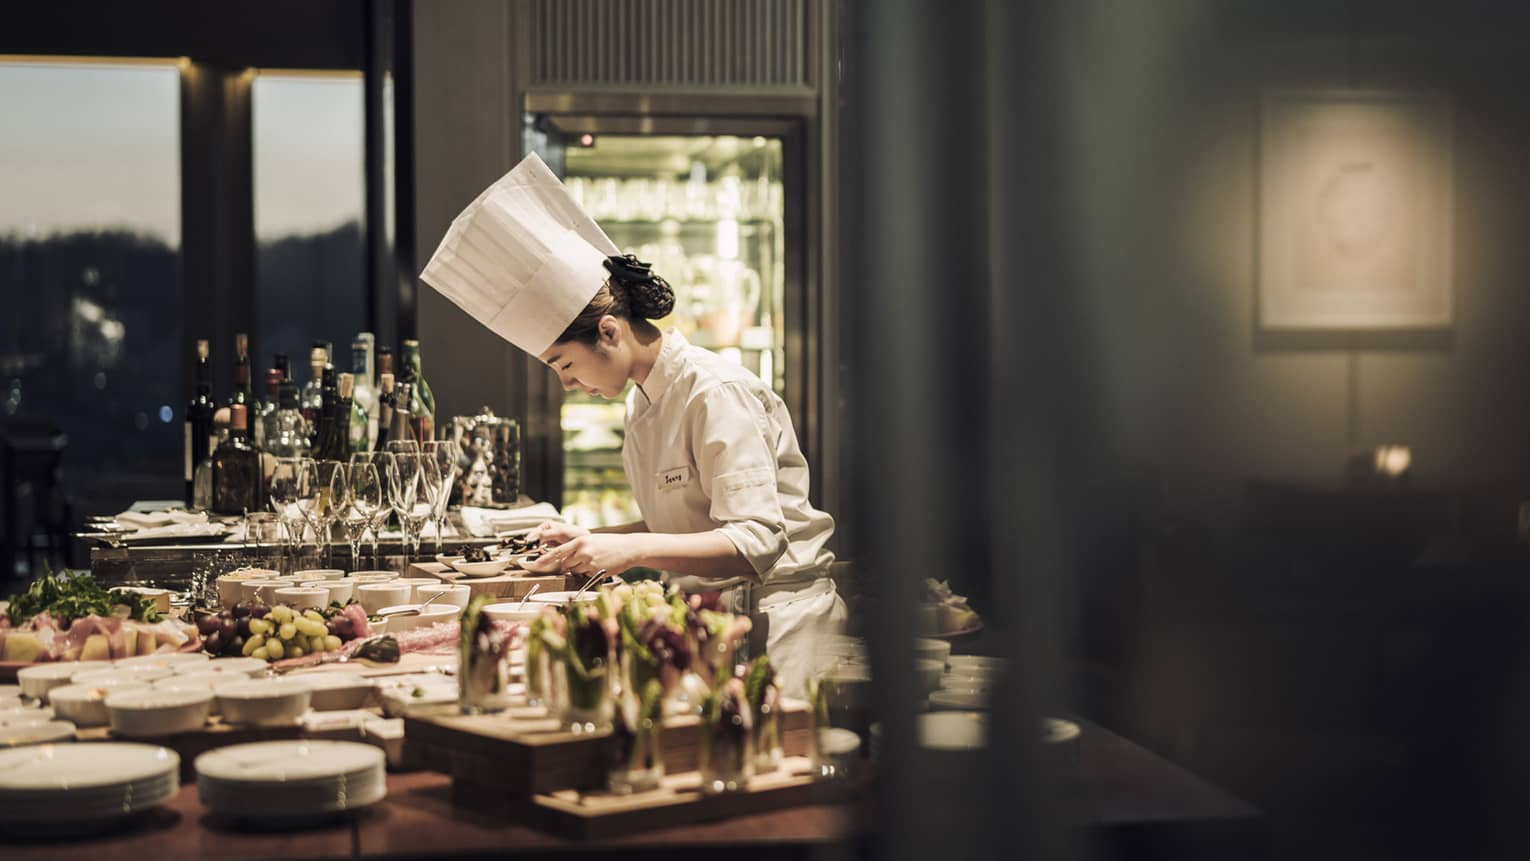 Chef wearing white uniform, hat stands garnishes appetizers on counter covered with dishes, meals